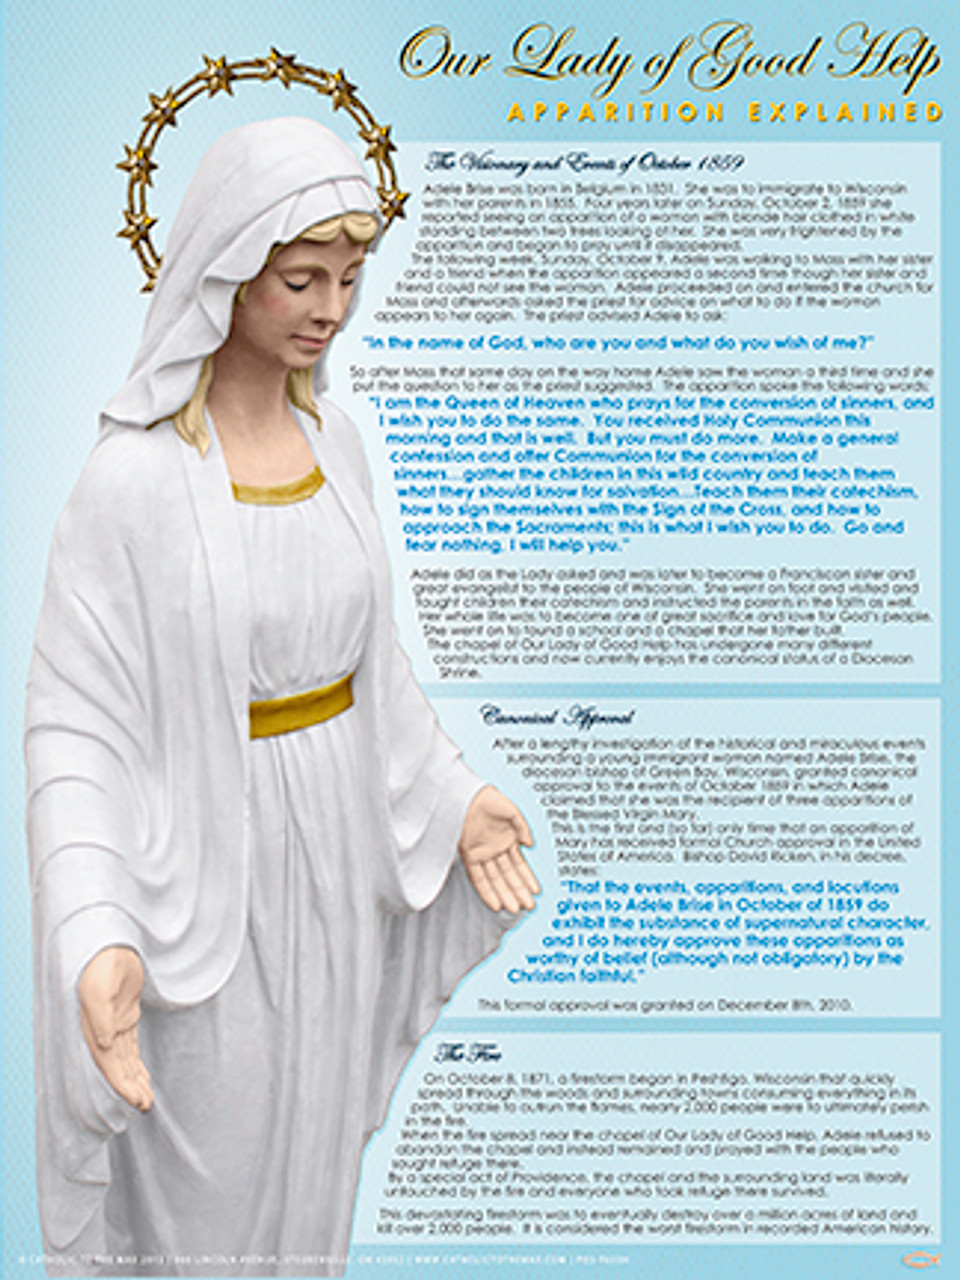 Our Good Life Top Ten Rainbow Cupcakes: Our Lady Of Good Help Apparition Explained Poster